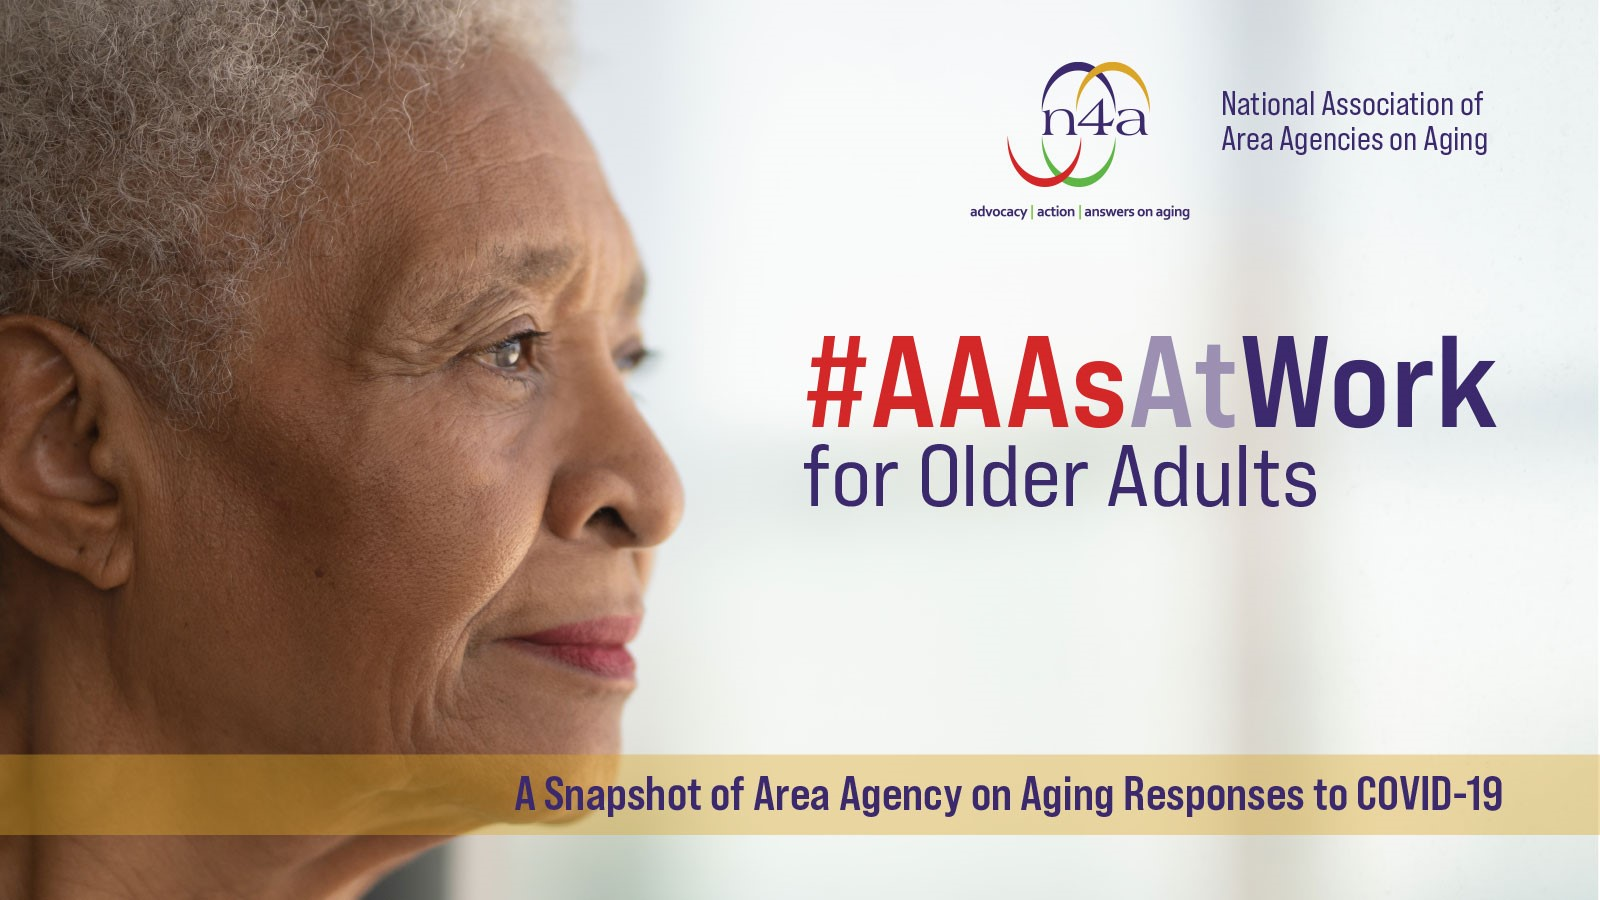 N4a National Association Of Area Agencies On Aging